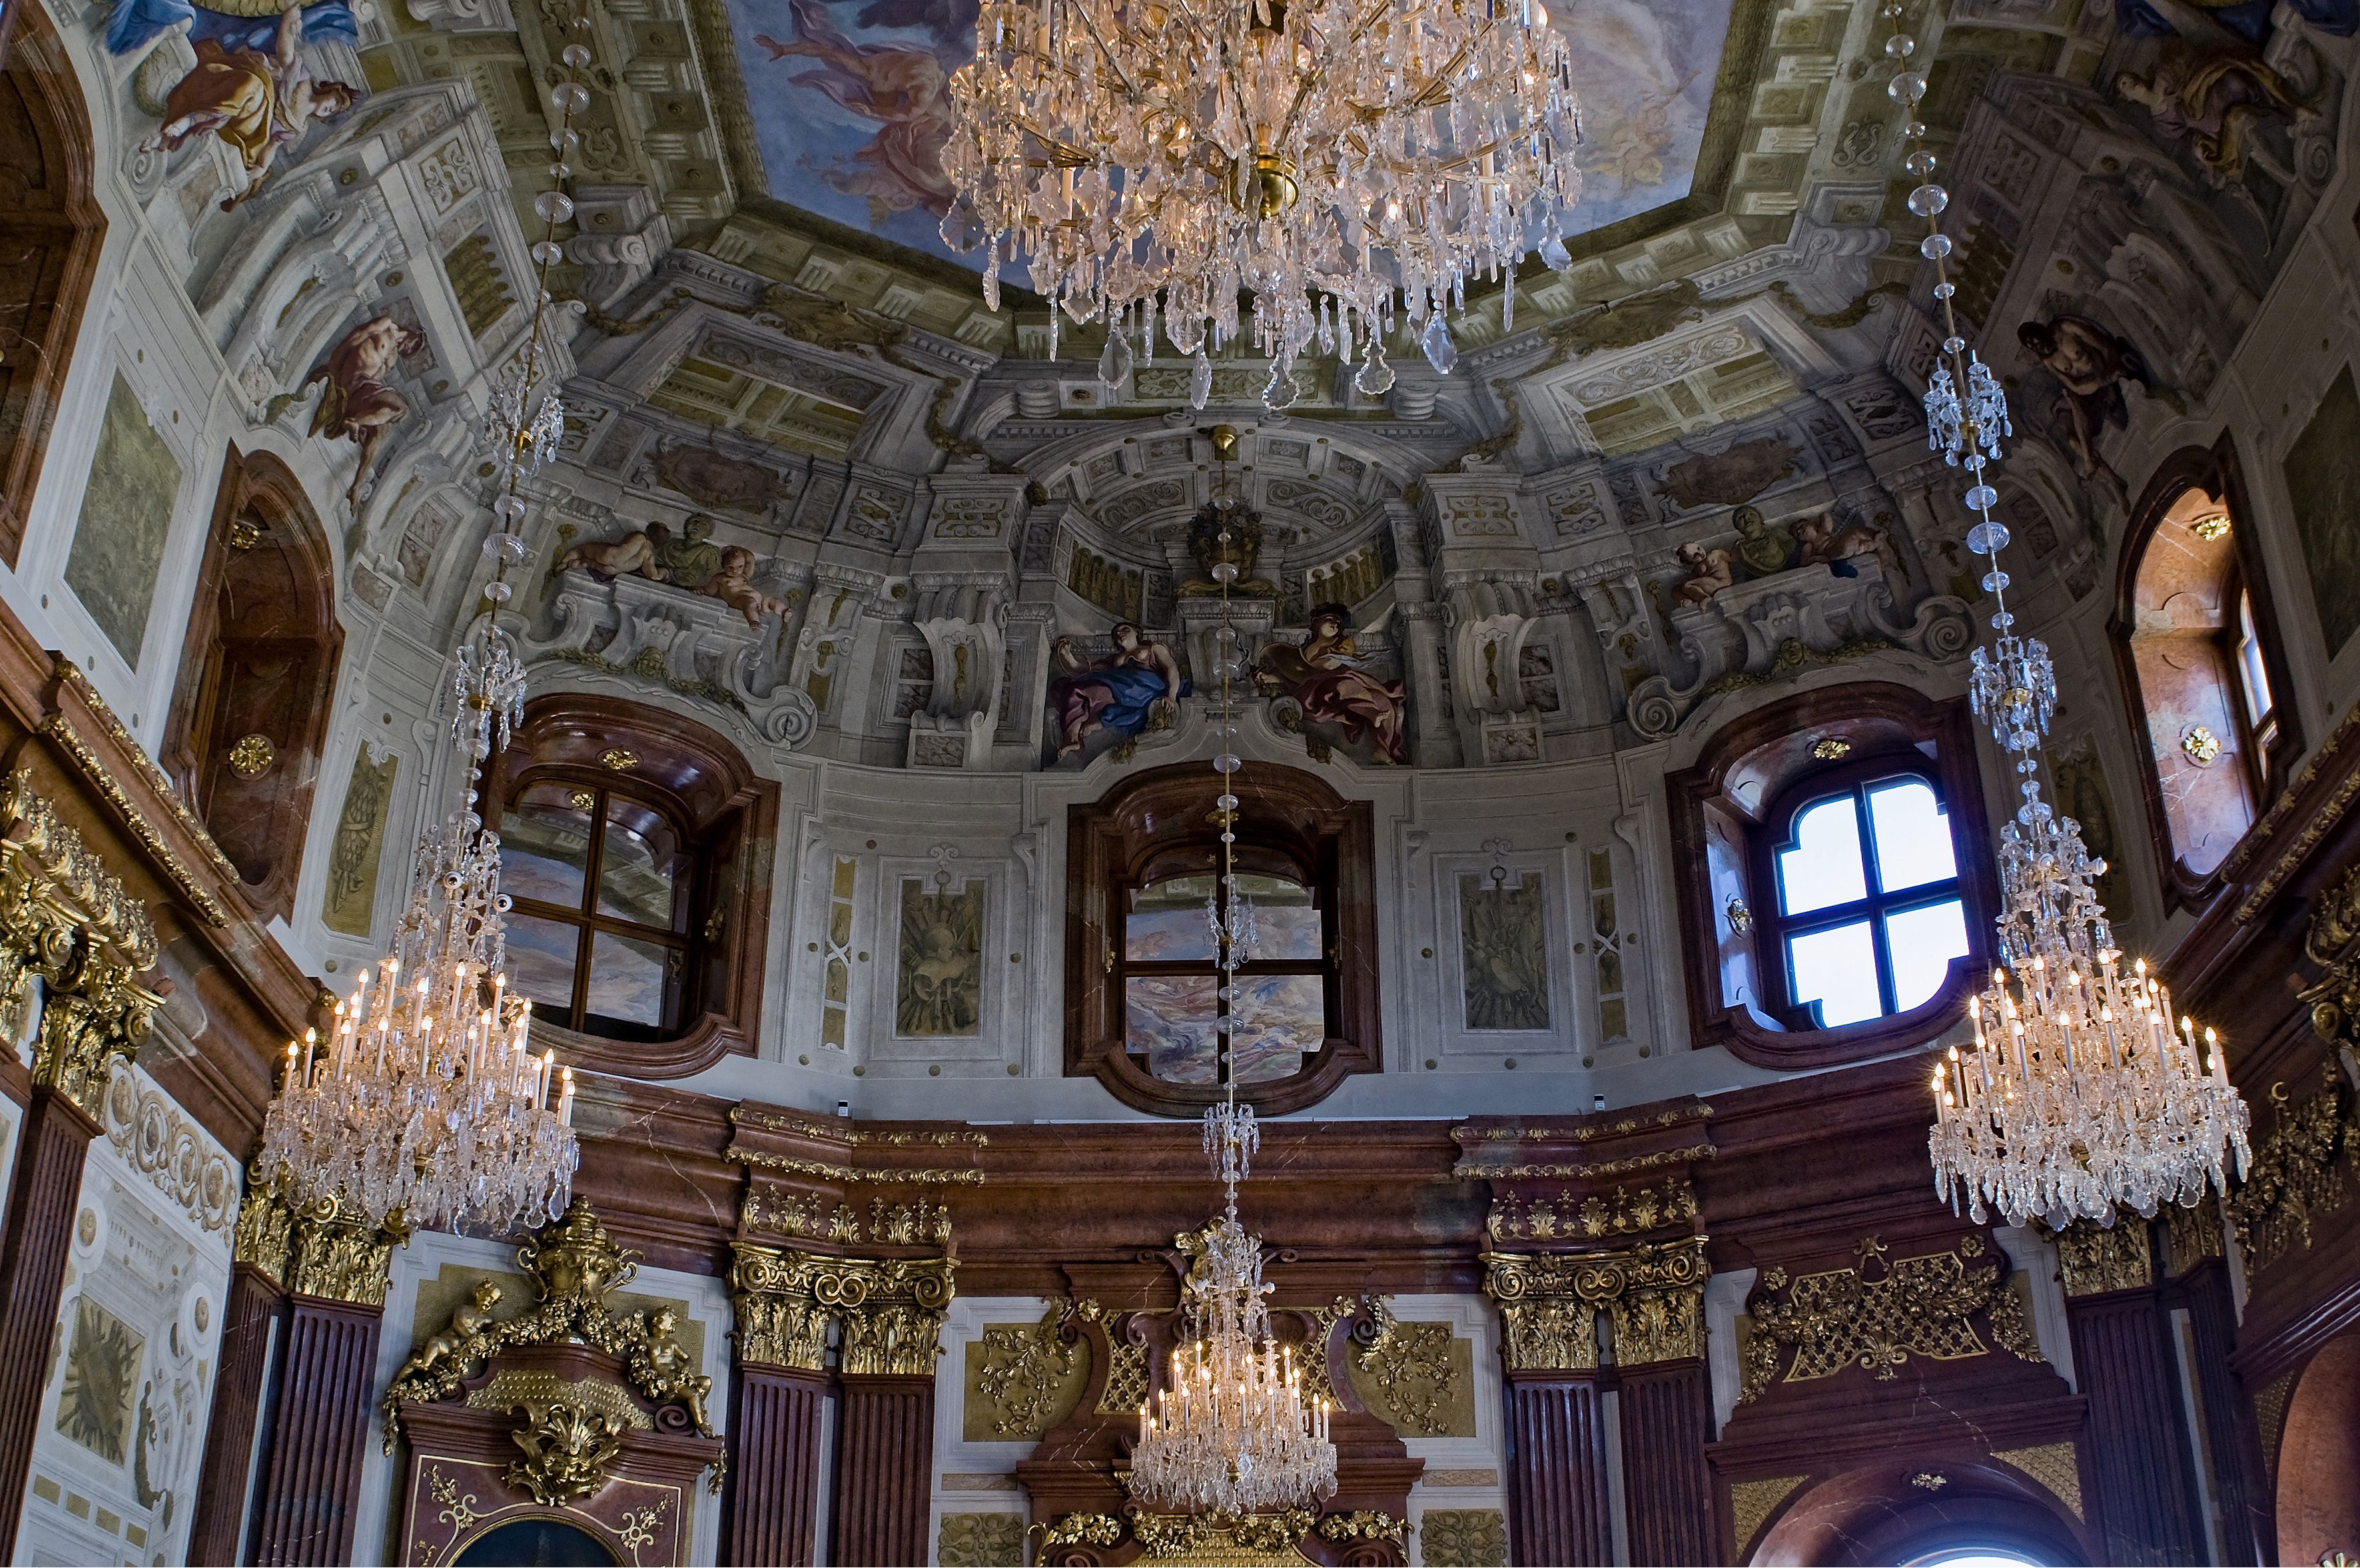 Ornate interior, including 4 chandeliers, of the Marble Hall at Upper Belvedere, Vienna, Austria